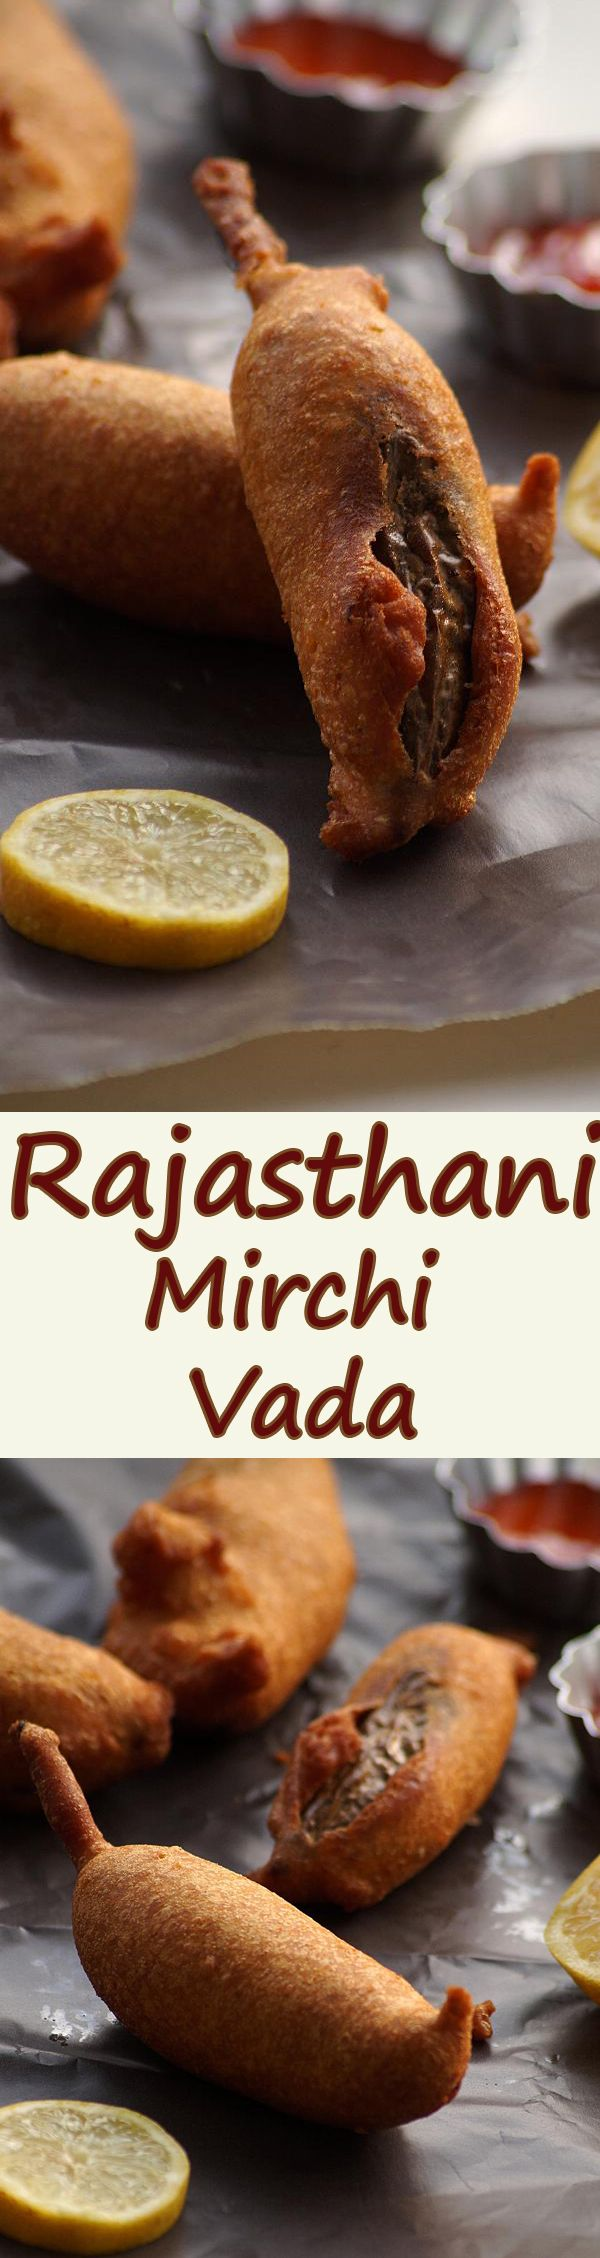 Jodhpuri Mirchi Vada Recipe - Rajasthani Style Mirchi Pakora with spicy potato filling. Recipe with step by step photos and full video. blendwithspices.com